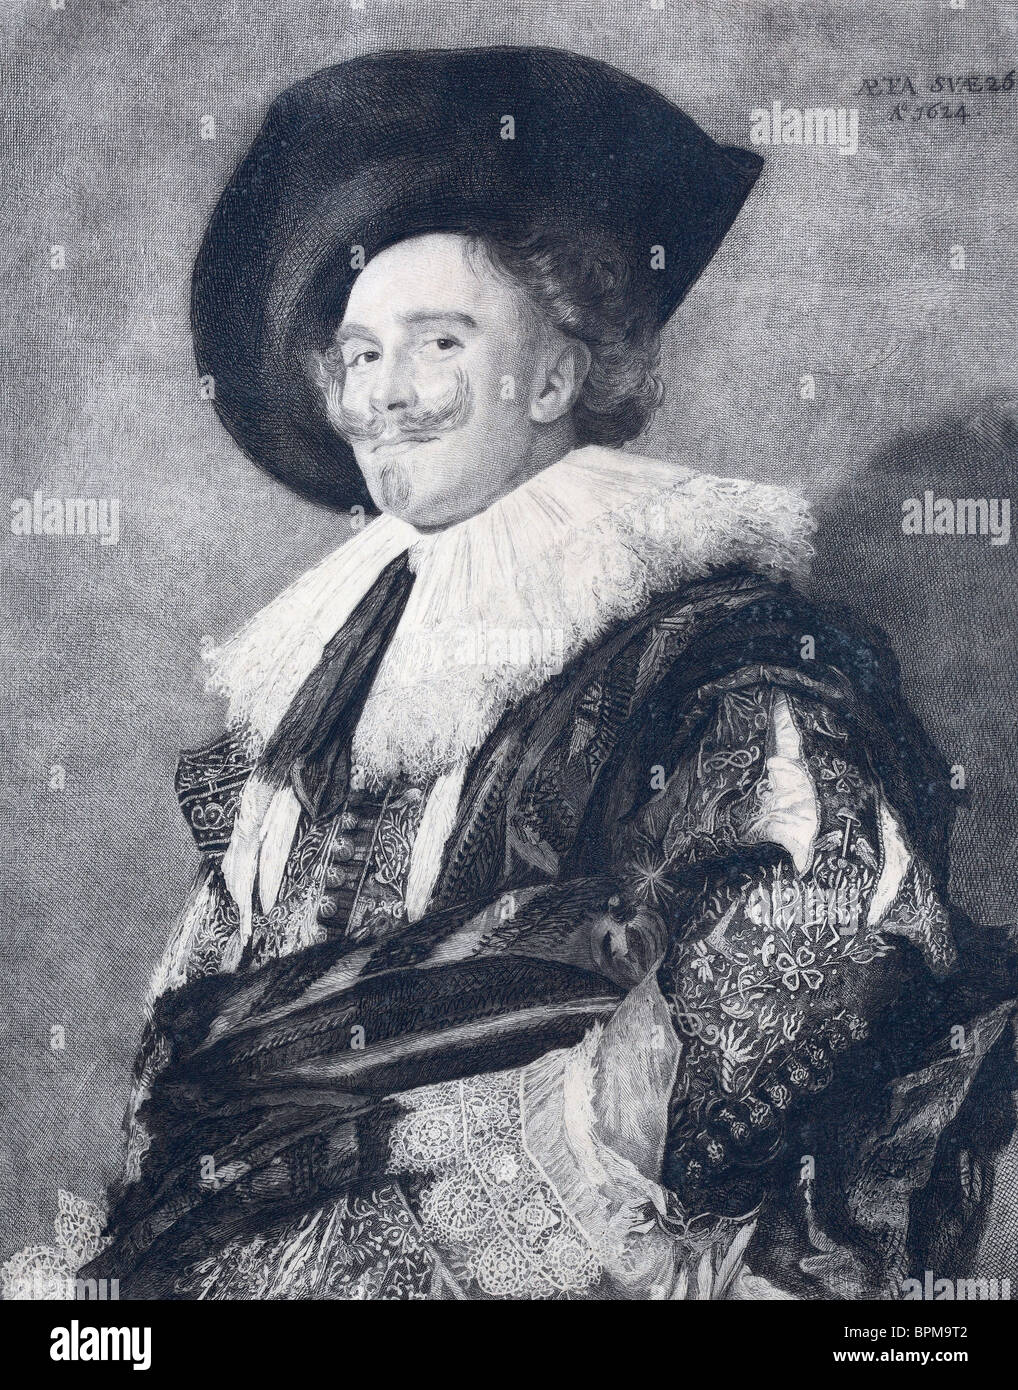 Etching by Petrus Arendzen of The Laughing Cavalier by Frans Hals. - Stock Image